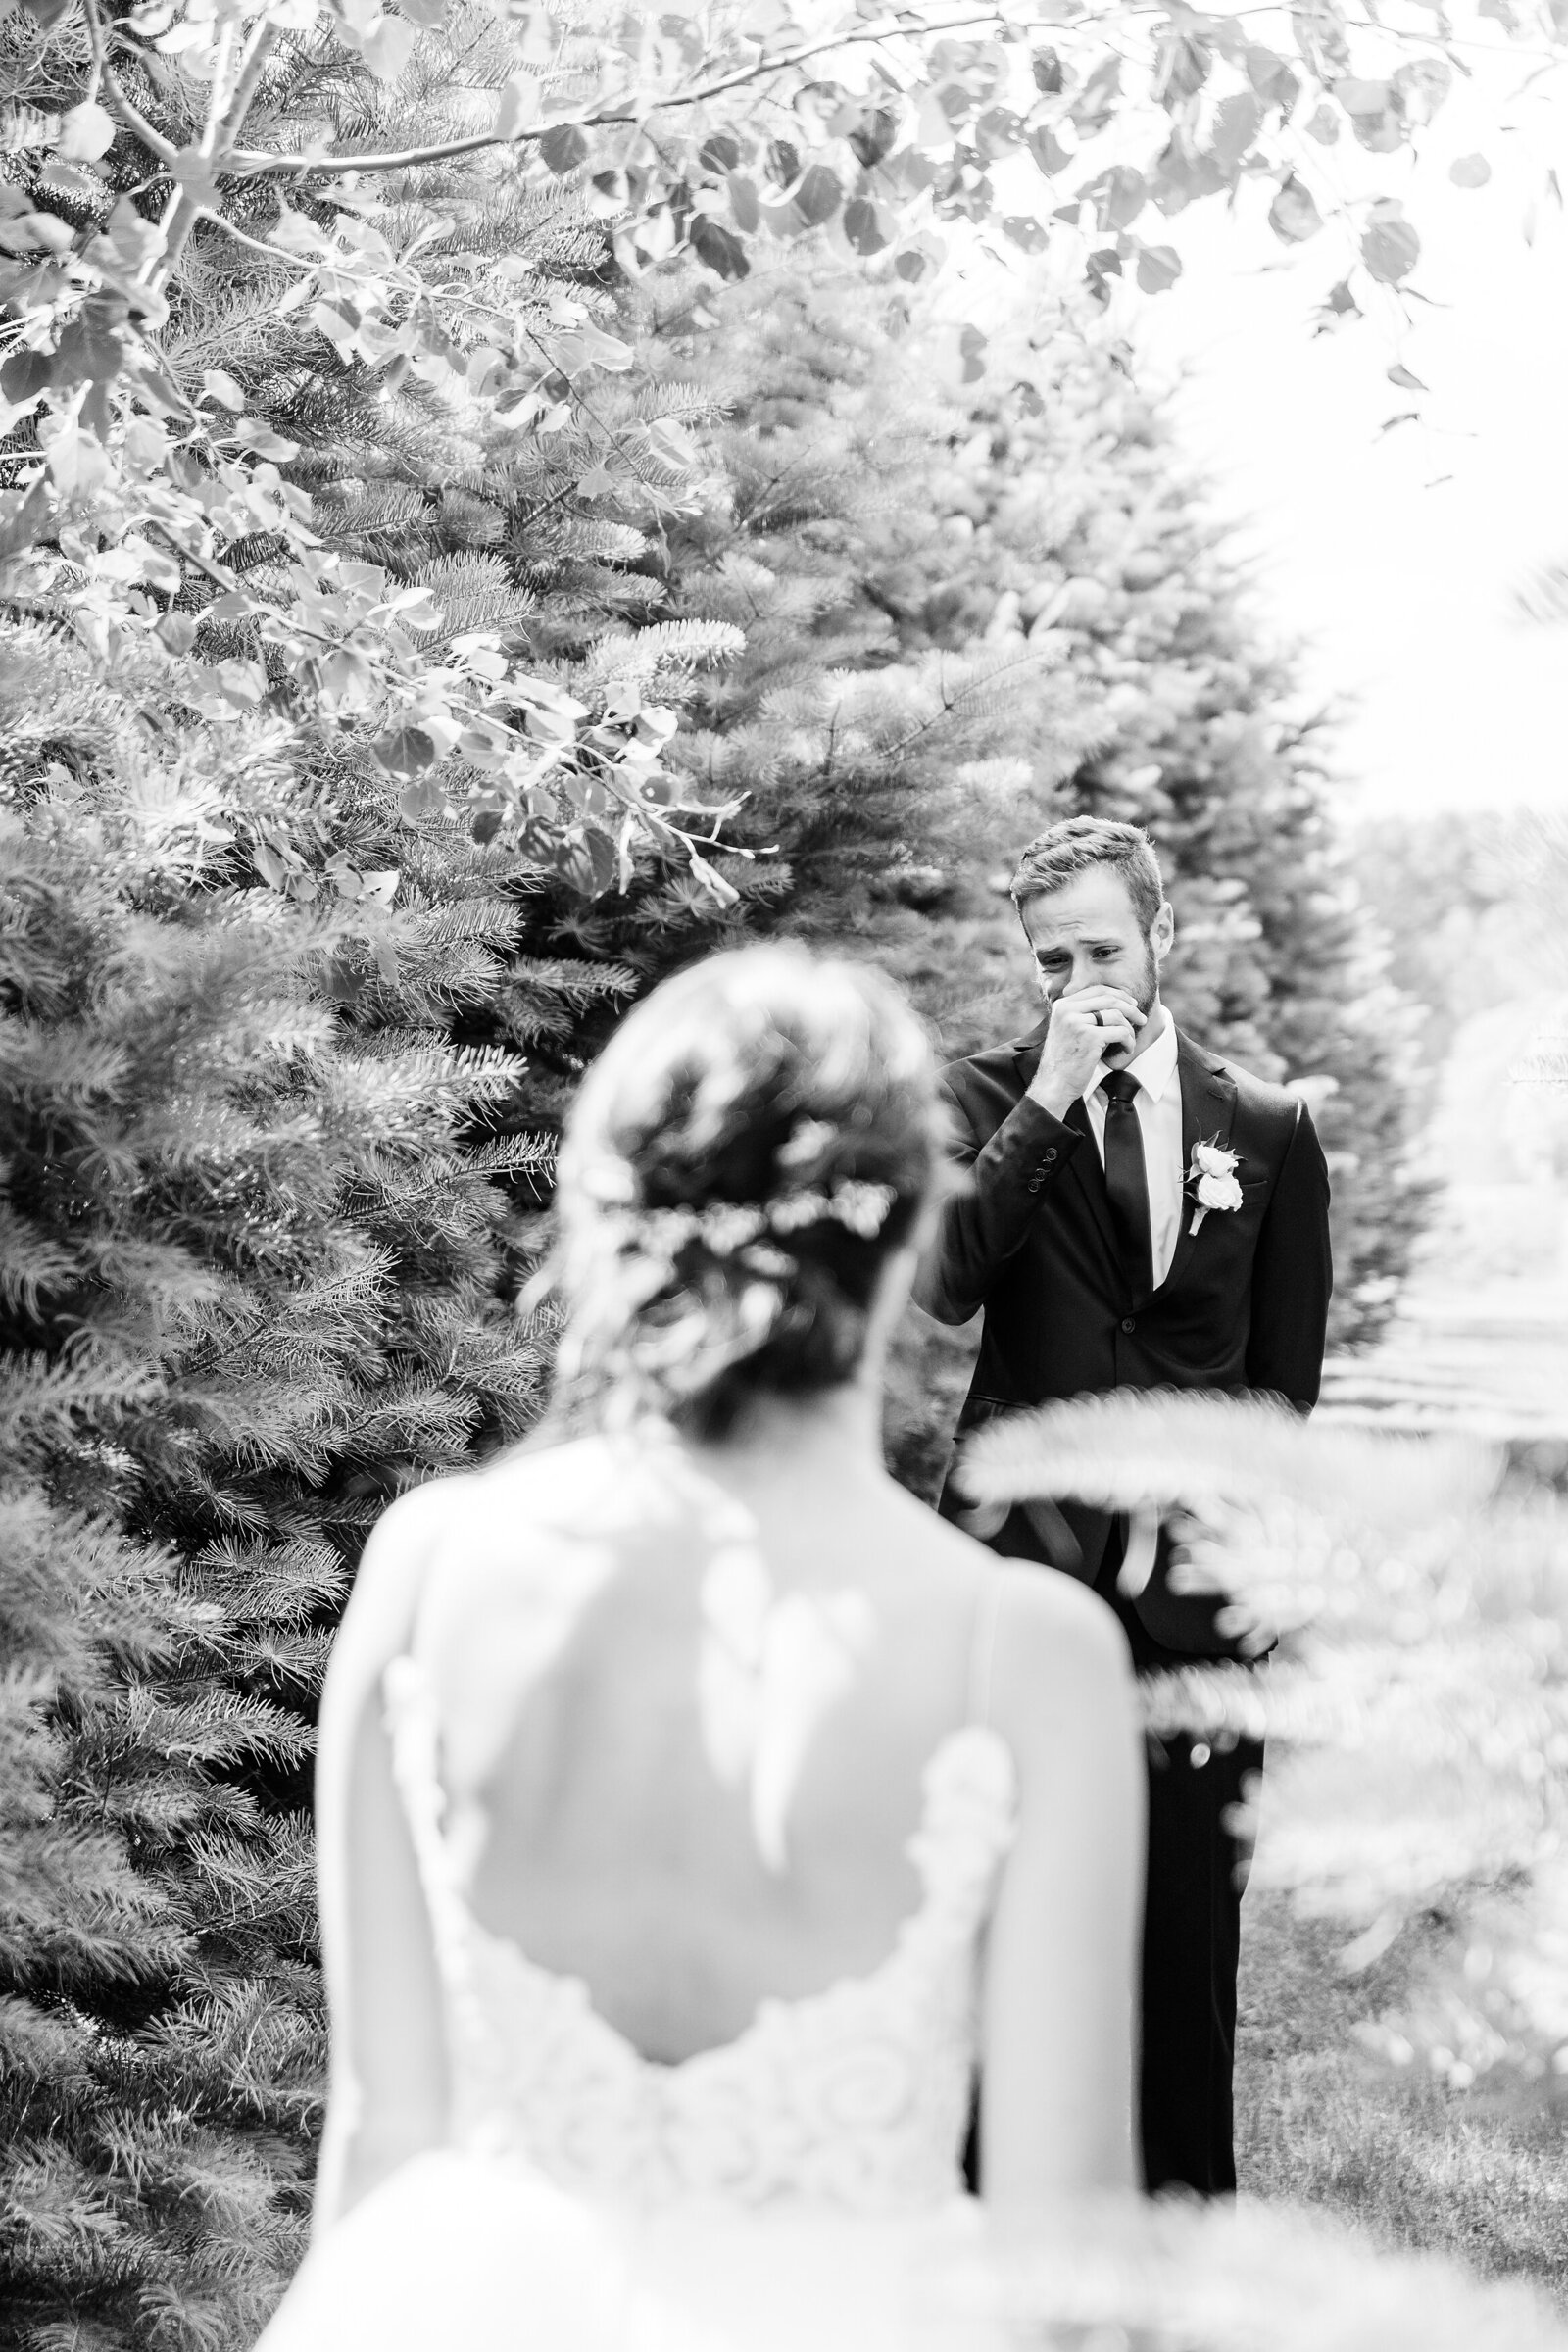 Grooms-has-the-most-emotional-reaction-during-first-look-with-his-future-wife-between-the-pines-at-arrowwood-farms-in-melbourne-ontario